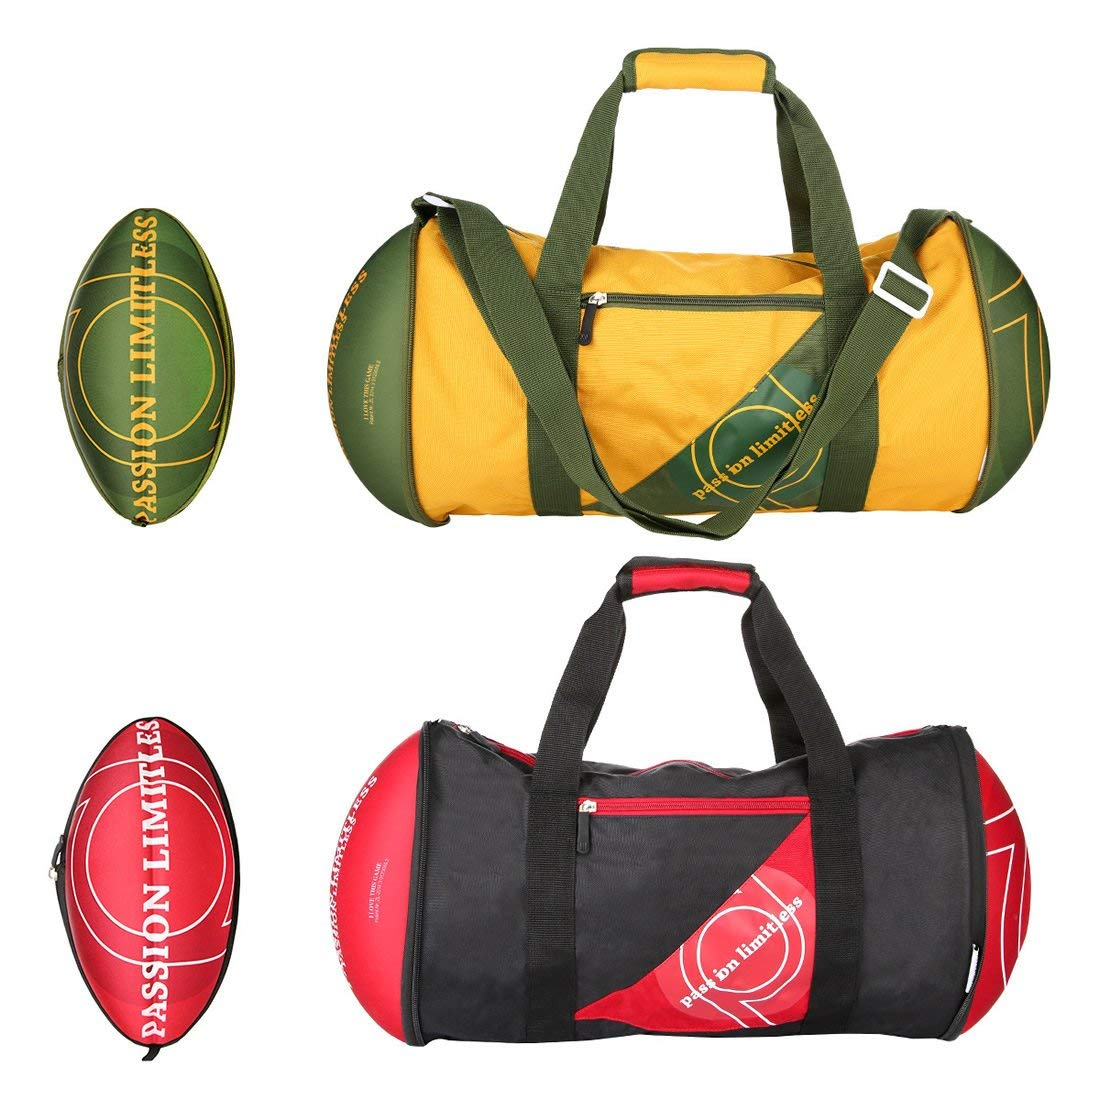 4418cdb8e5dc Get Quotations · Stimmt 22 Inch Duffel Bag Gym Bag For Women and Men - Oval  Shape Rugby Bag